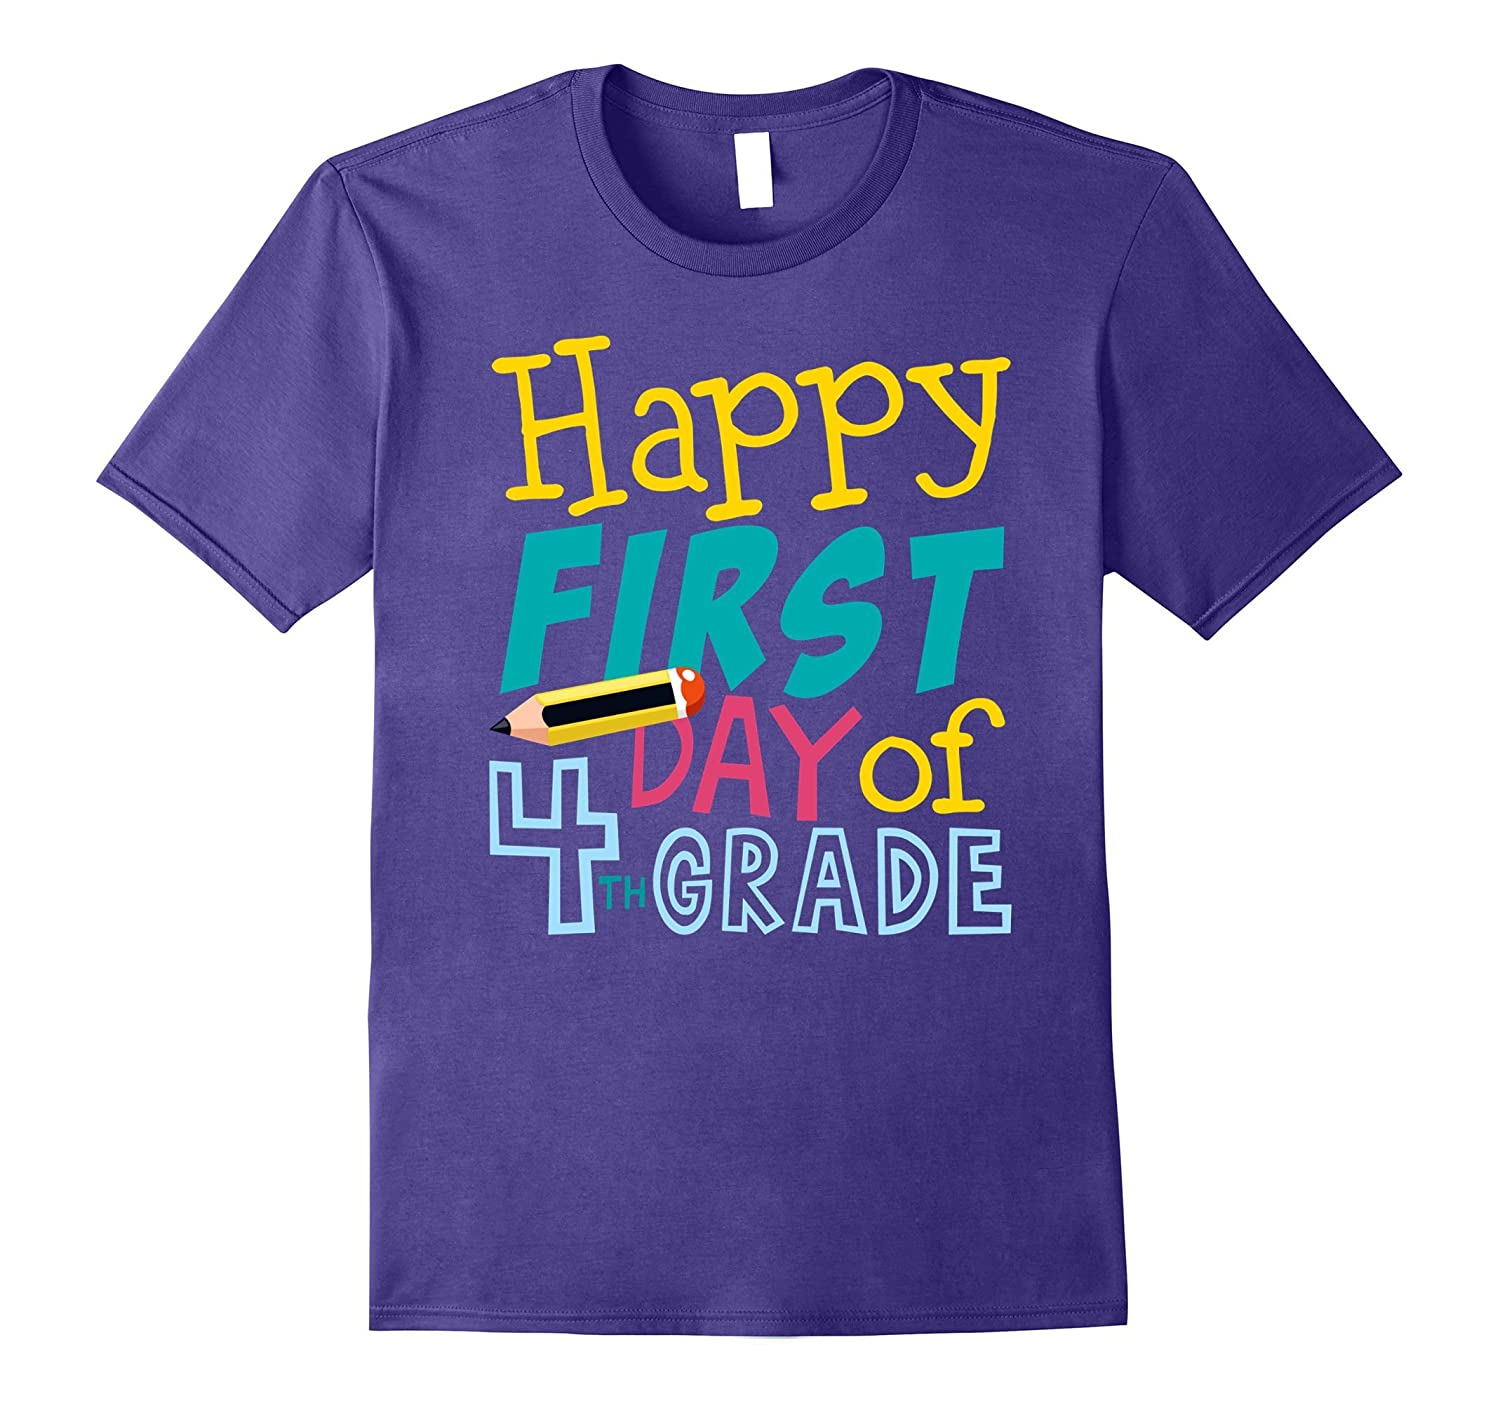 Happy First Day Of 4th Grade T-shirt